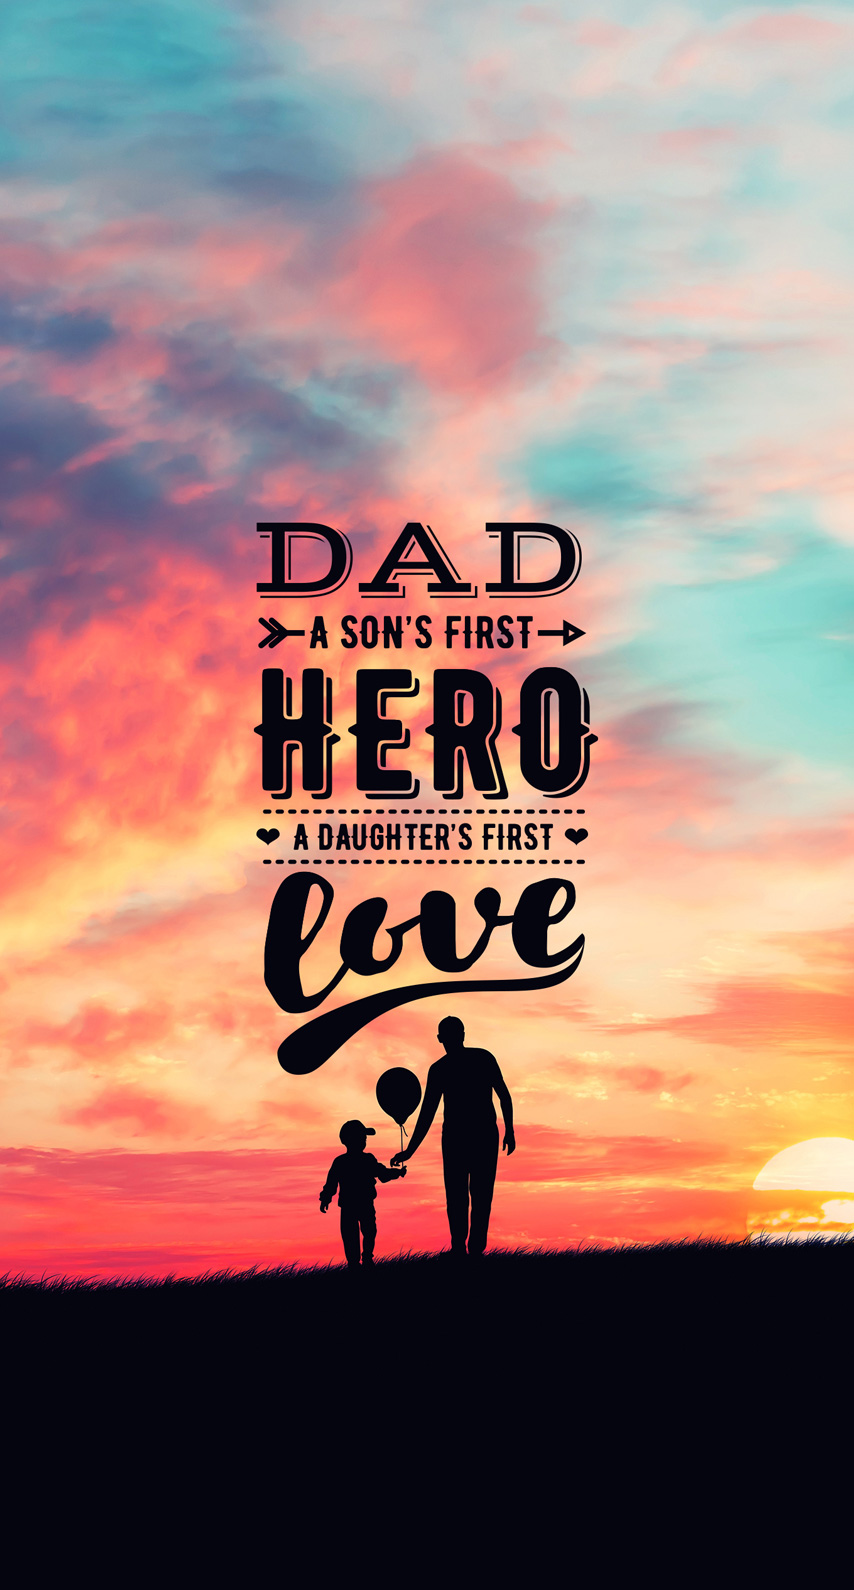 dad, father